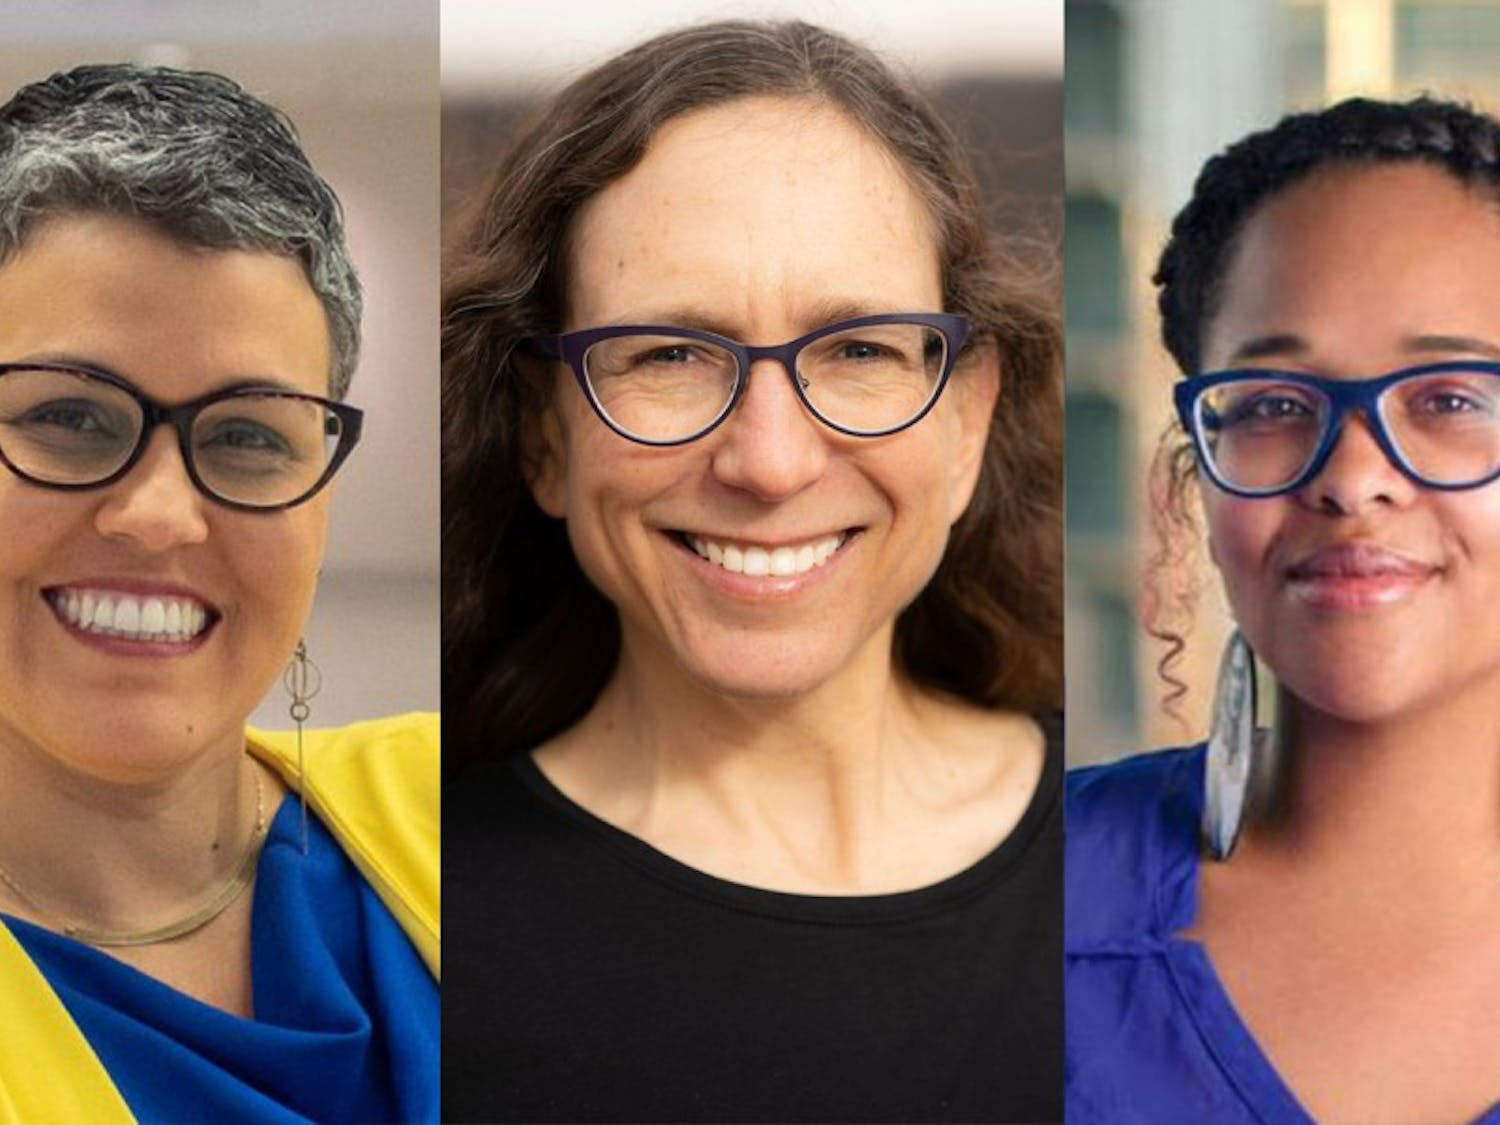 For the first time in Madison's history, the seven seats on the Madison Metropolitan School Board are held entirely by women. Now, what else will change?